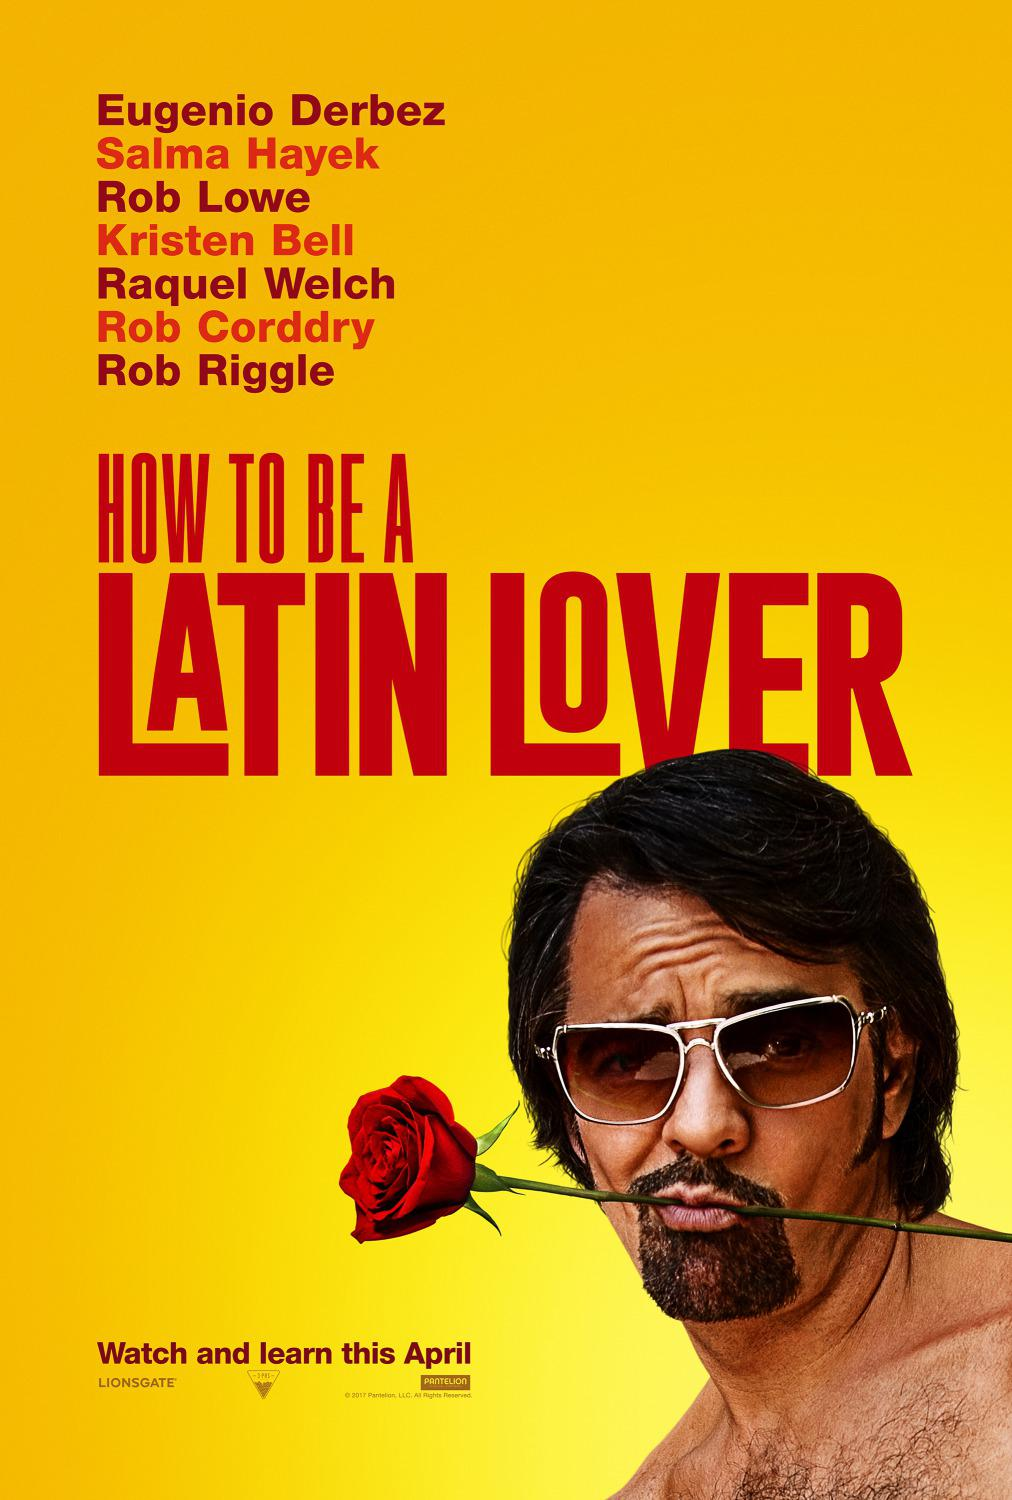 How to be a Latin Lover - Come diventare un Amante Latino - Cómo ser un Latin Lover  - Eugenio Derbez - Salma Hayek - Rob Lowe - Kristen Bell - Raquel Welch - Rob Corddry - Rob Riggle